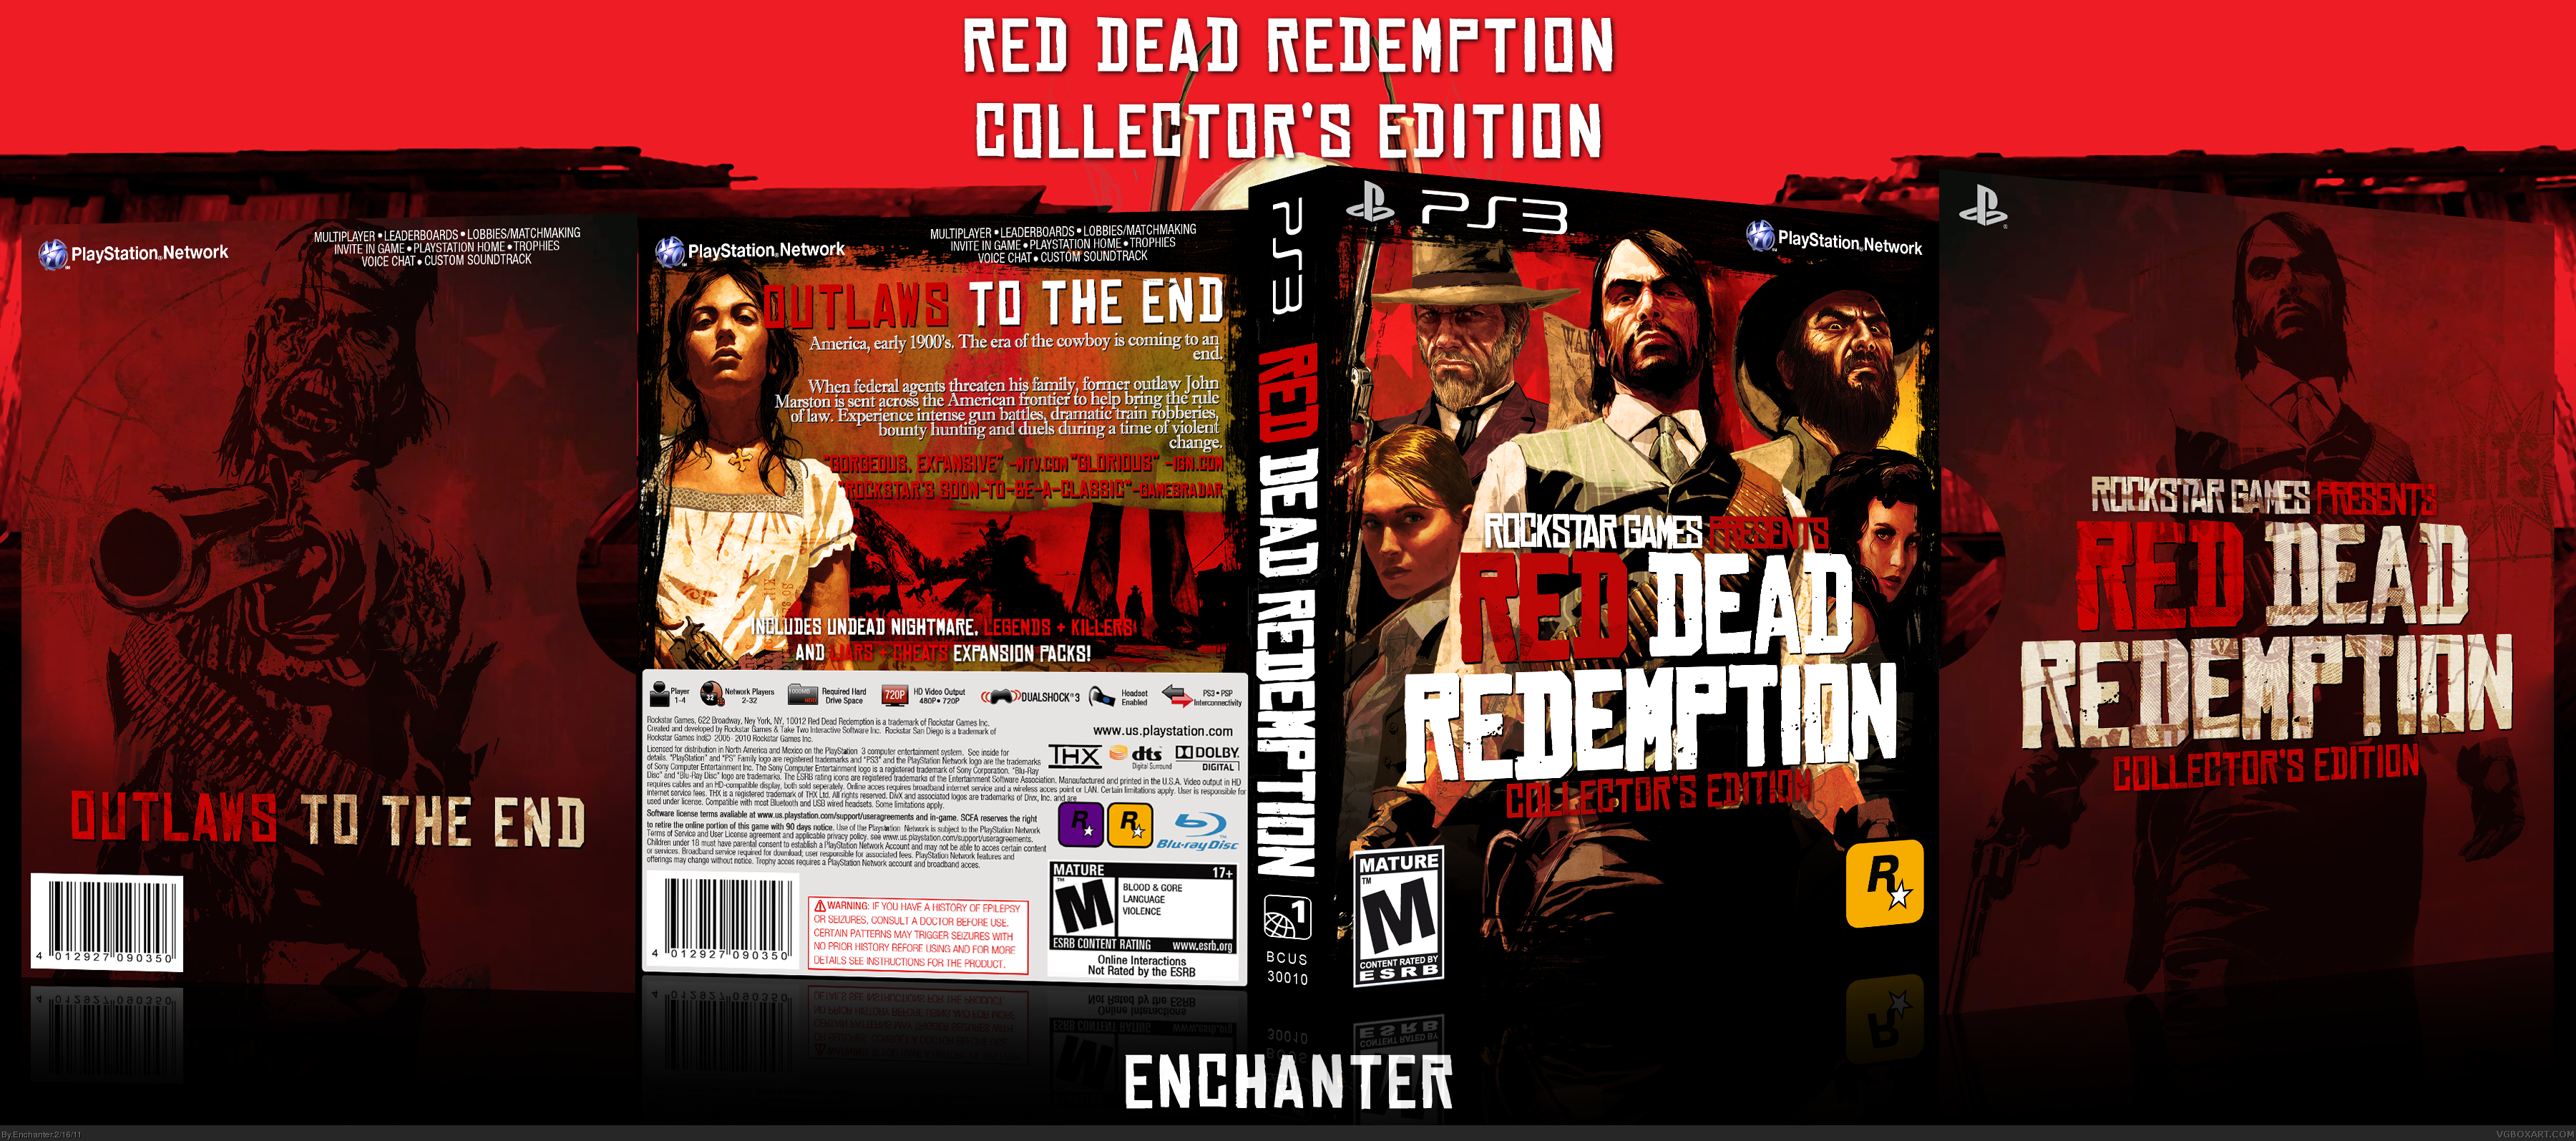 red dead redemption collectors edition playstation 3 box